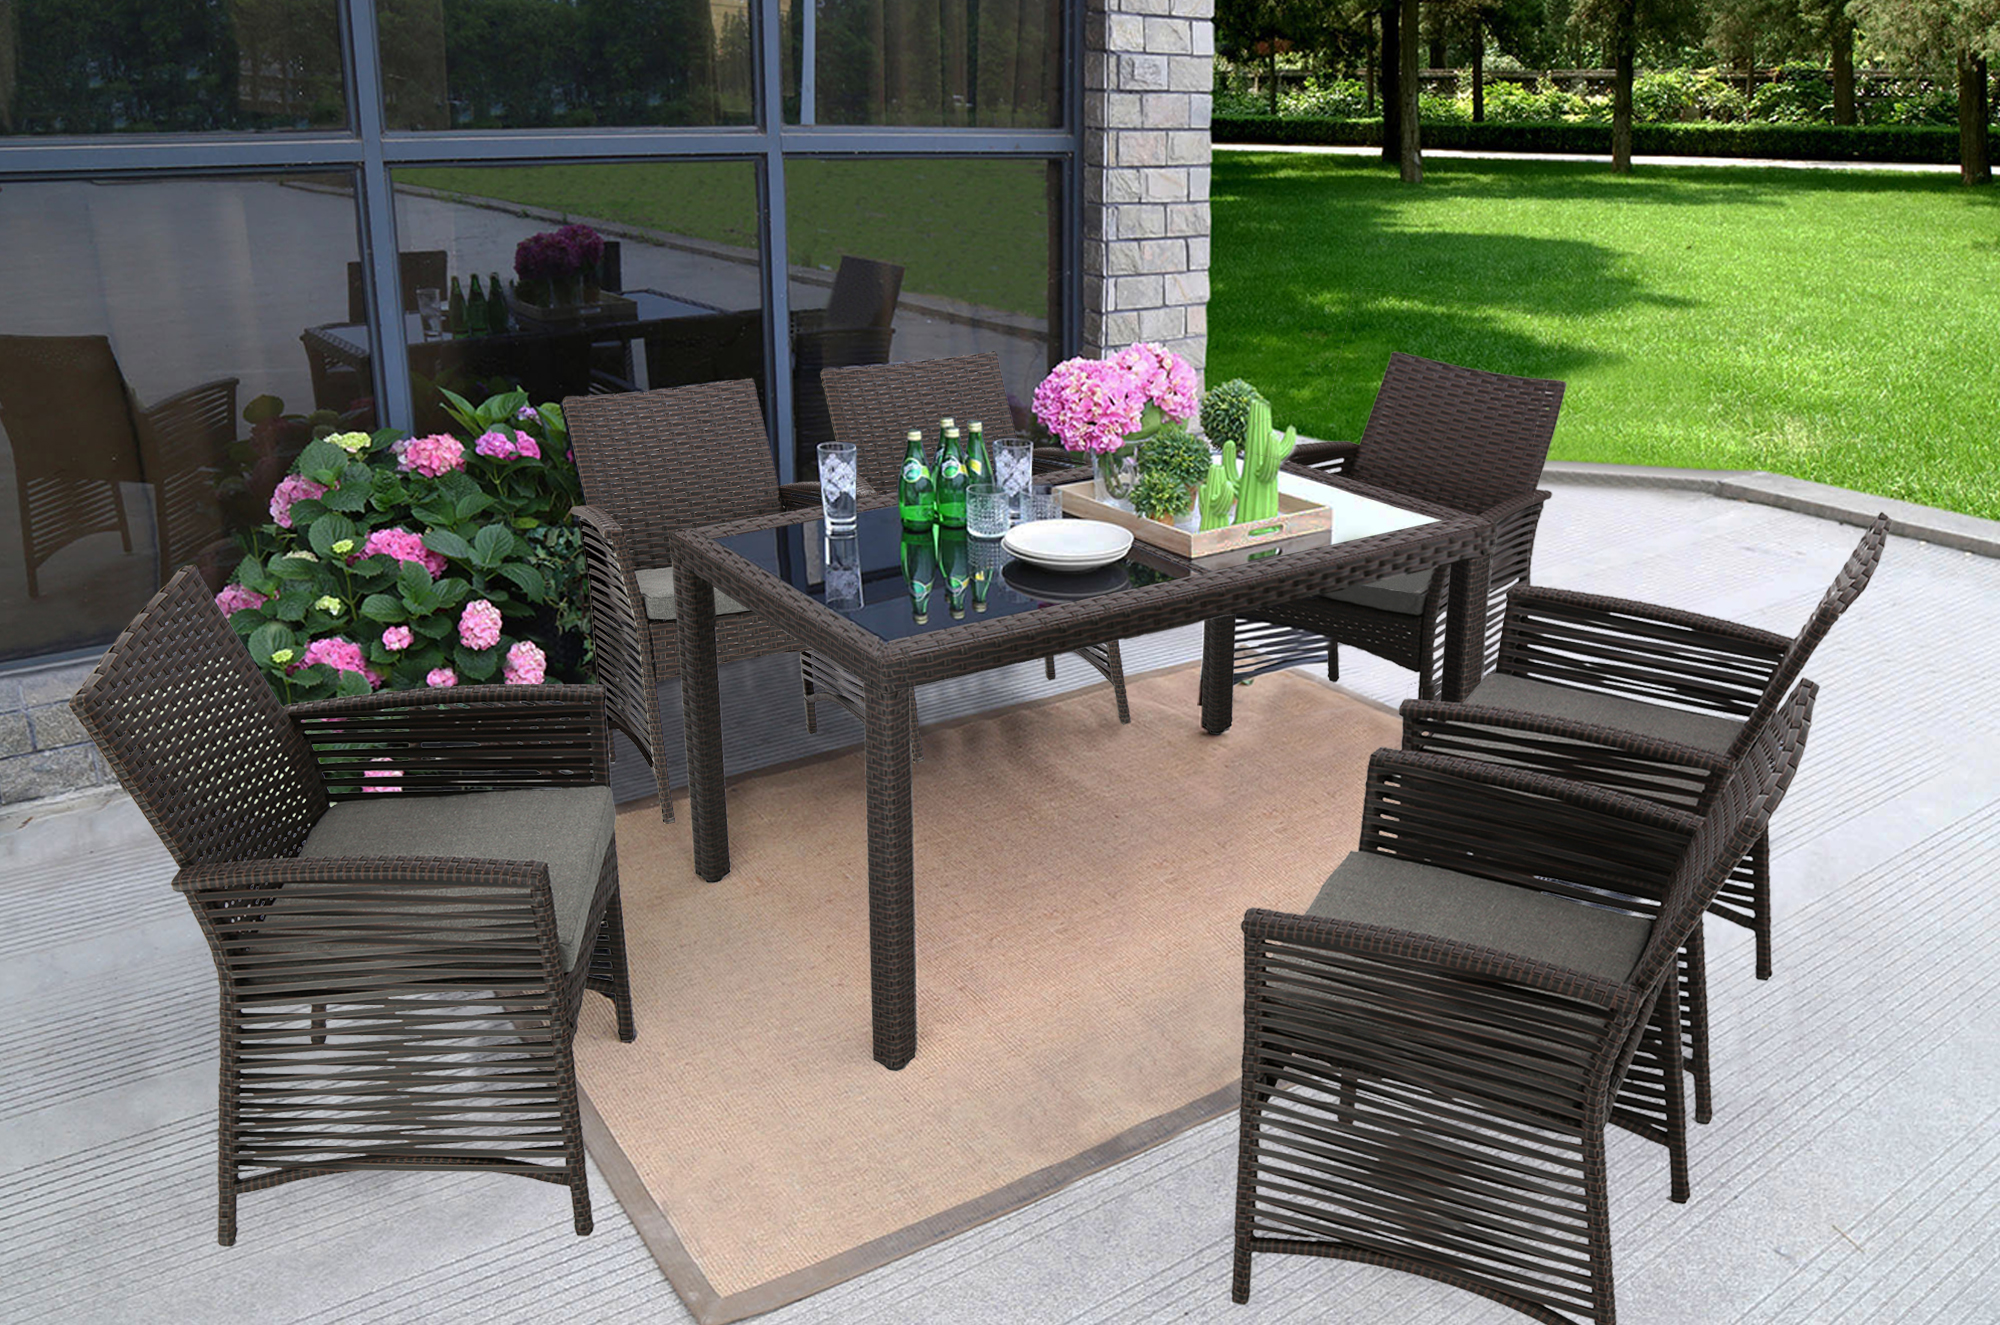 baner garden h19ch 7 pieces outdoor patio backyard steel frame sofa set rattan furniture six chairs and one rectangle table with cushions chocolate